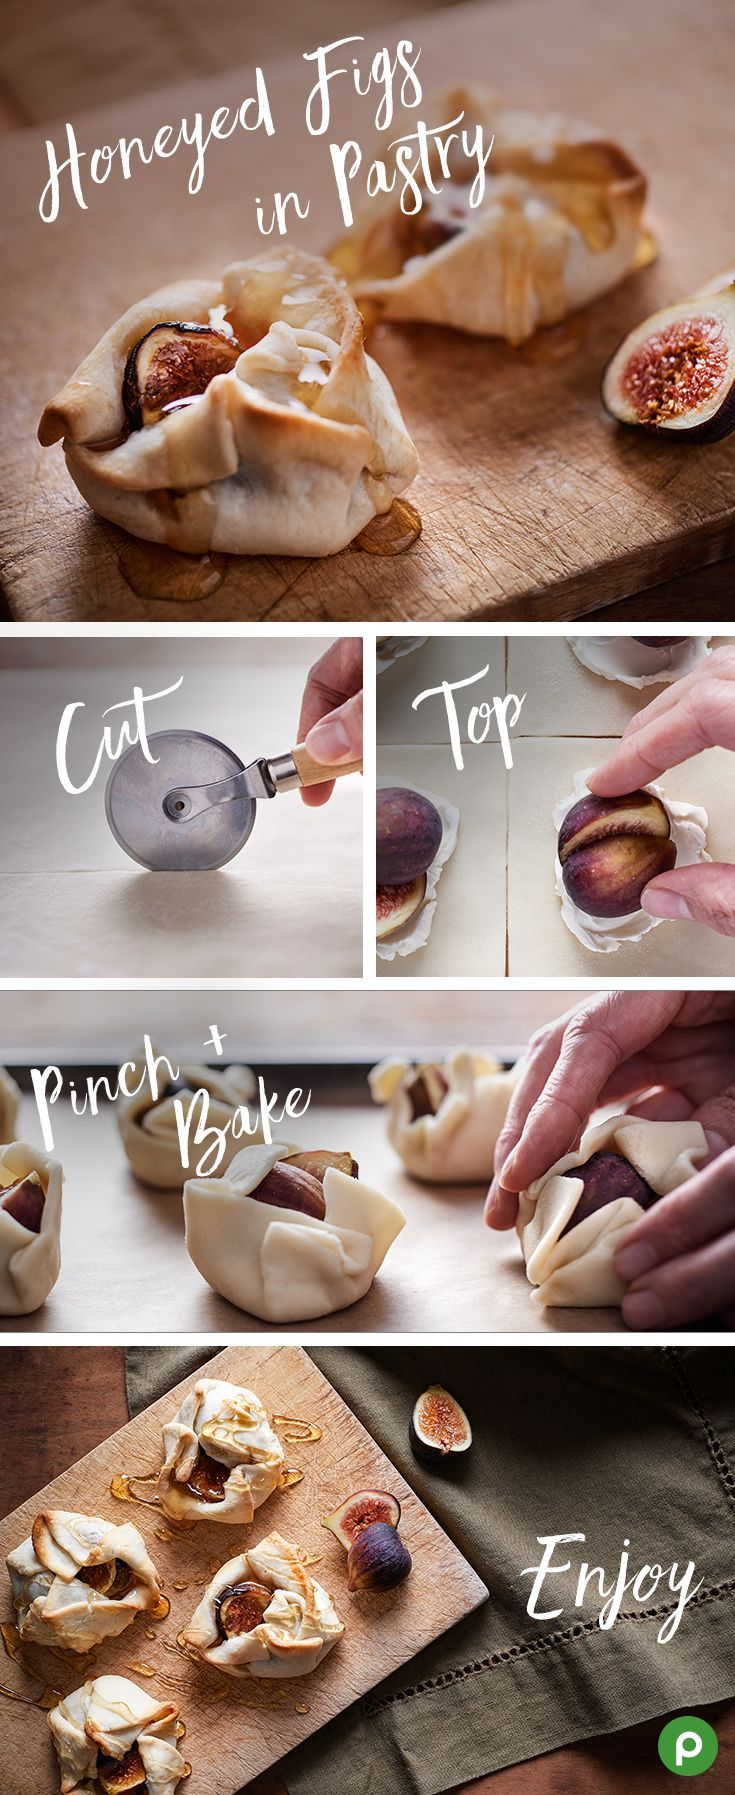 Make sure to bake plenty of these Honeyed Figs in Pastry for your Thanksgiving dessert, because the whole family is going to want more. Thankfully, they're easy to make with this Publix recipe. Cut a ready-to-bake piecrust in eight 3-inch squares. Place cream cheese in the middle of each square, top with a fig, and drizzle with honey. Pinch the dough together around the figs, and bake until they're golden brown. | Follow @gwylio0148 or visit http://gwyl.io/ for more diy/kids/pets videos